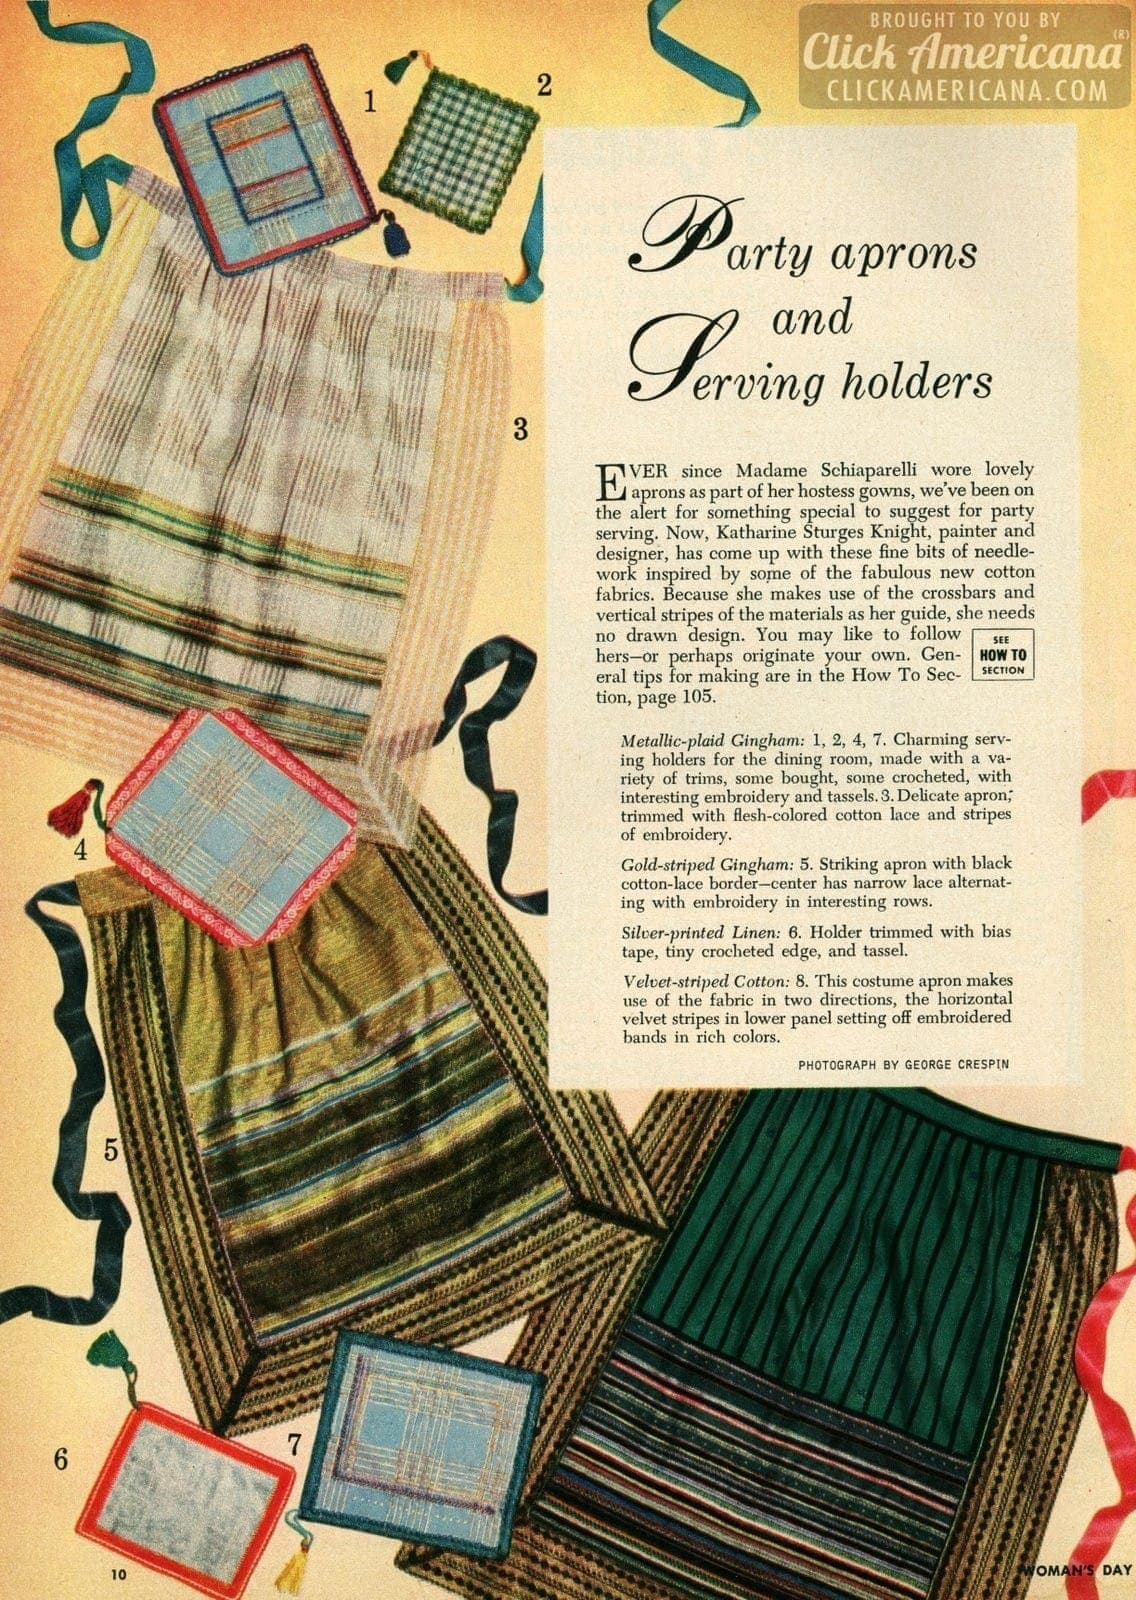 Make your own party aprons & serving holders (1950)